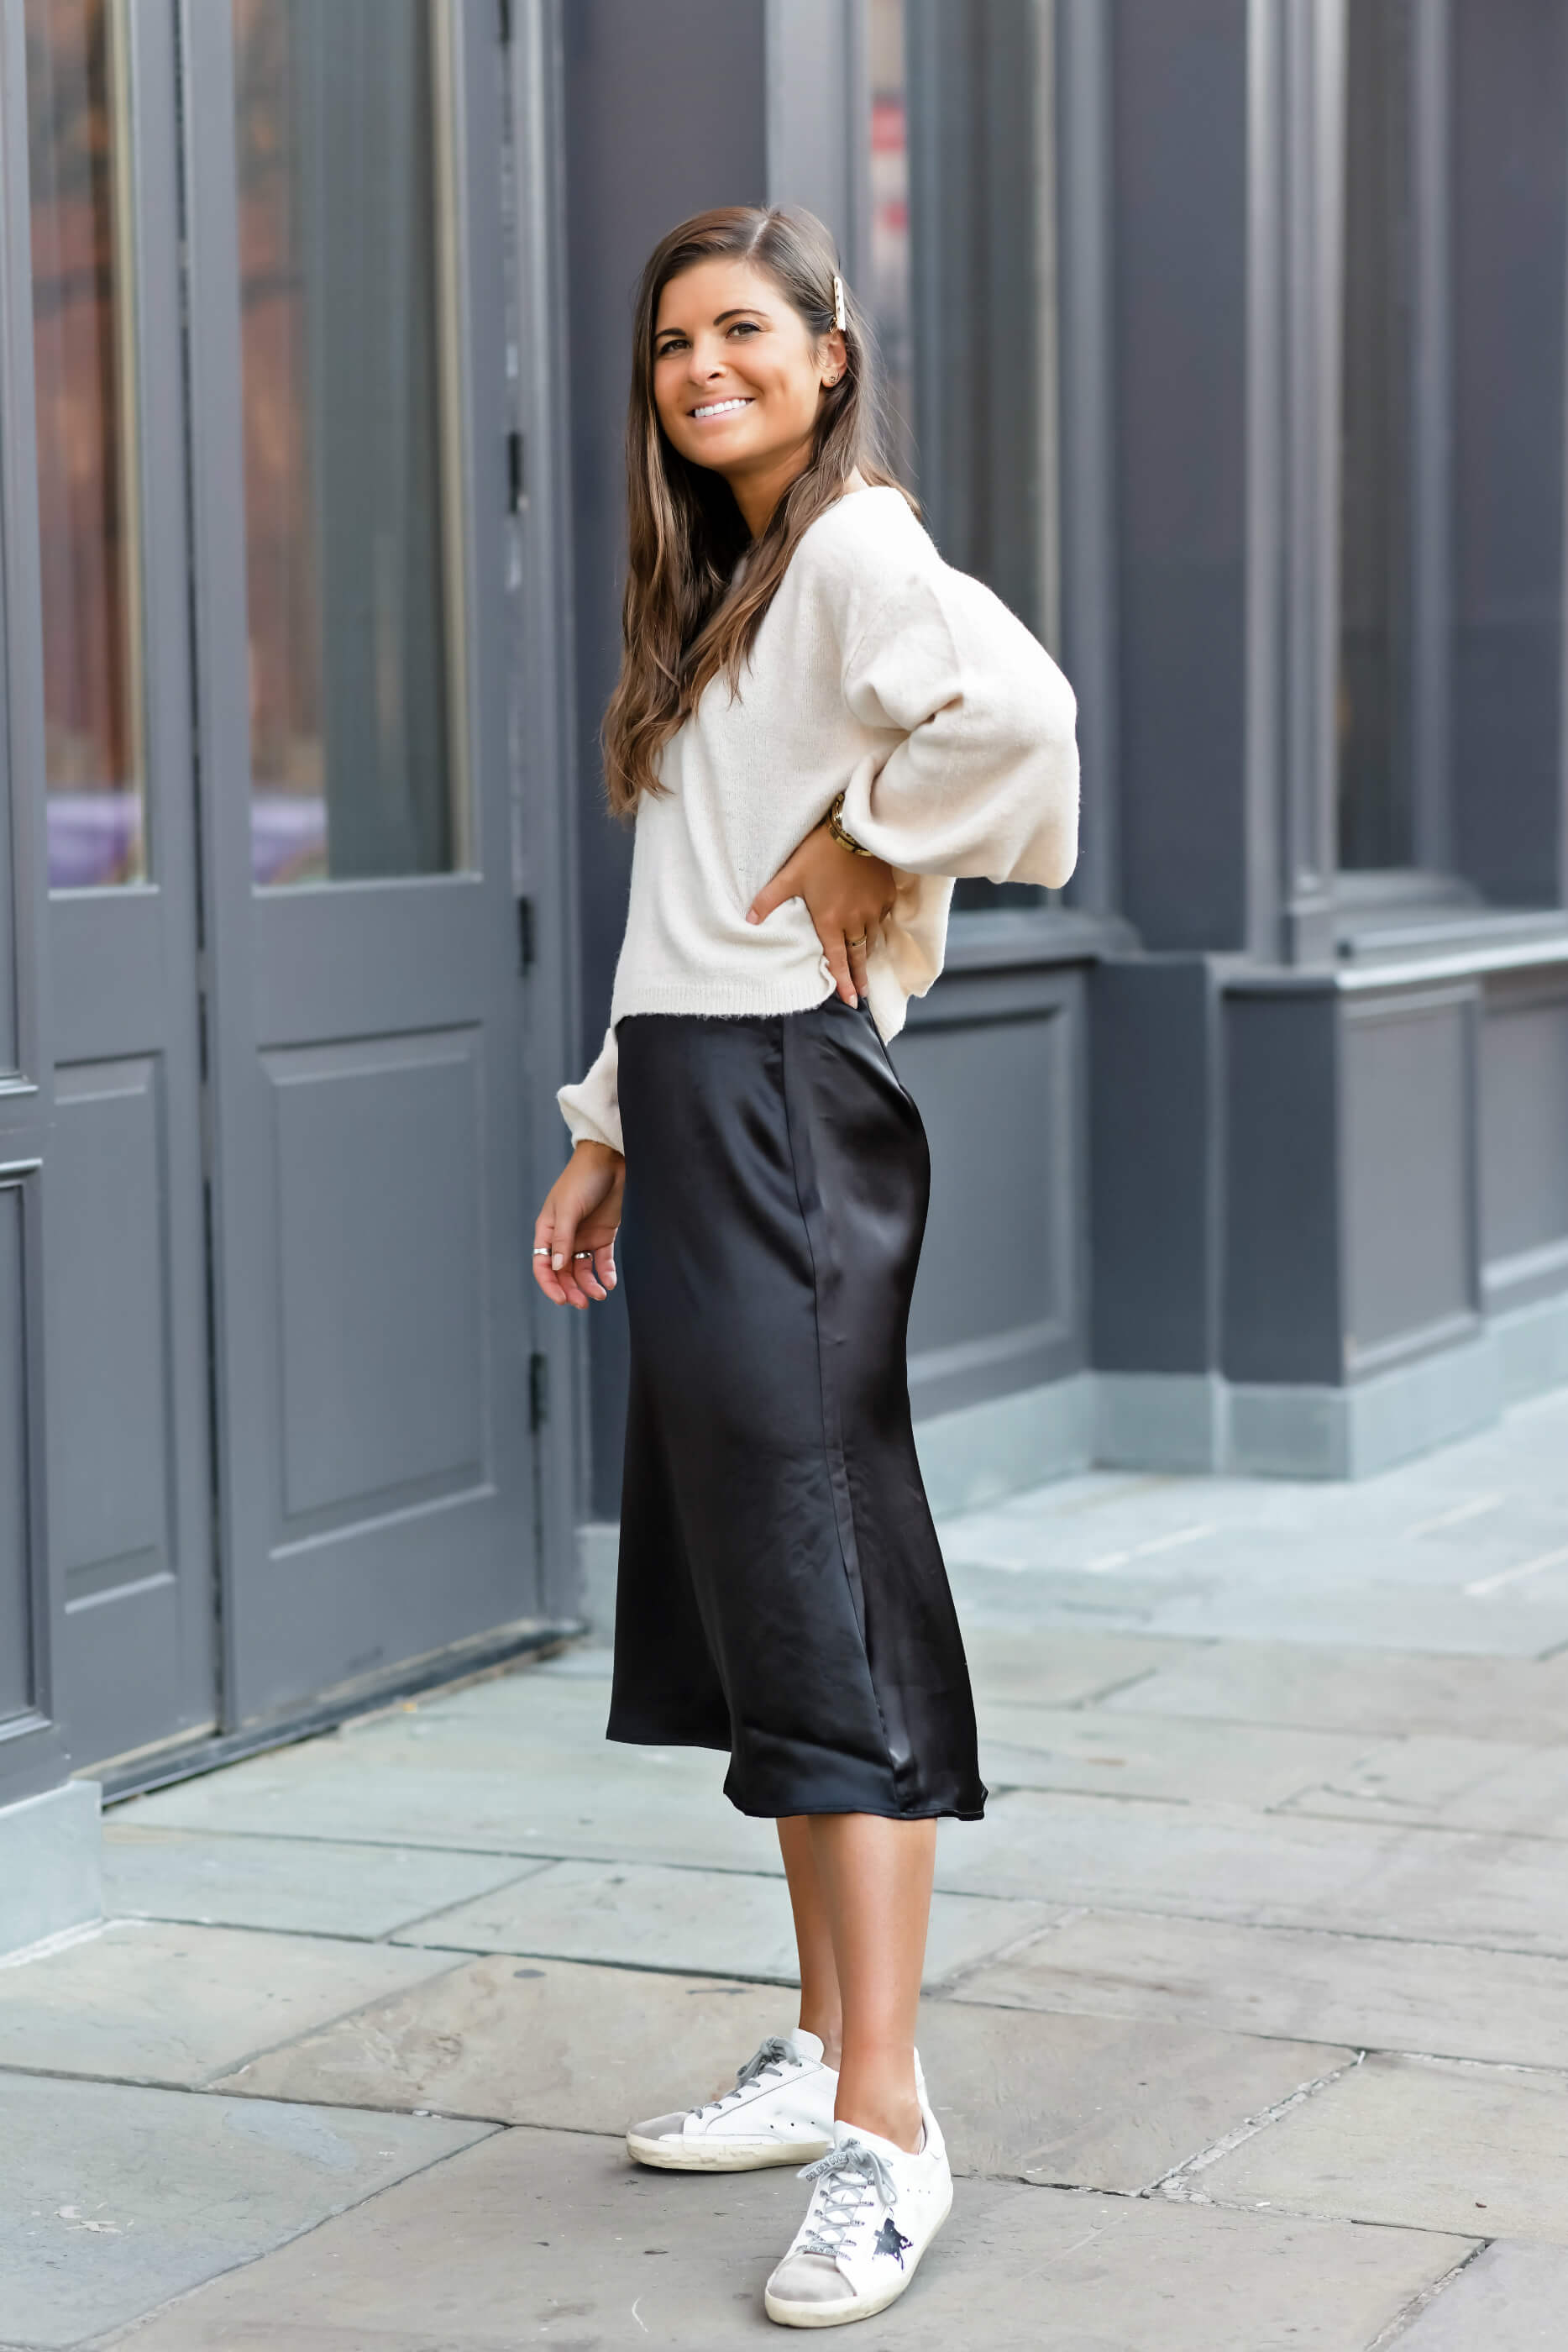 Two Ways To Style A Satin Midi Skirt, Skirt & Sweater Outfit With Golden Goose Superstar Sneakers, Fall Style, Lucki Clover Boutique, Tilden of To Be Bright